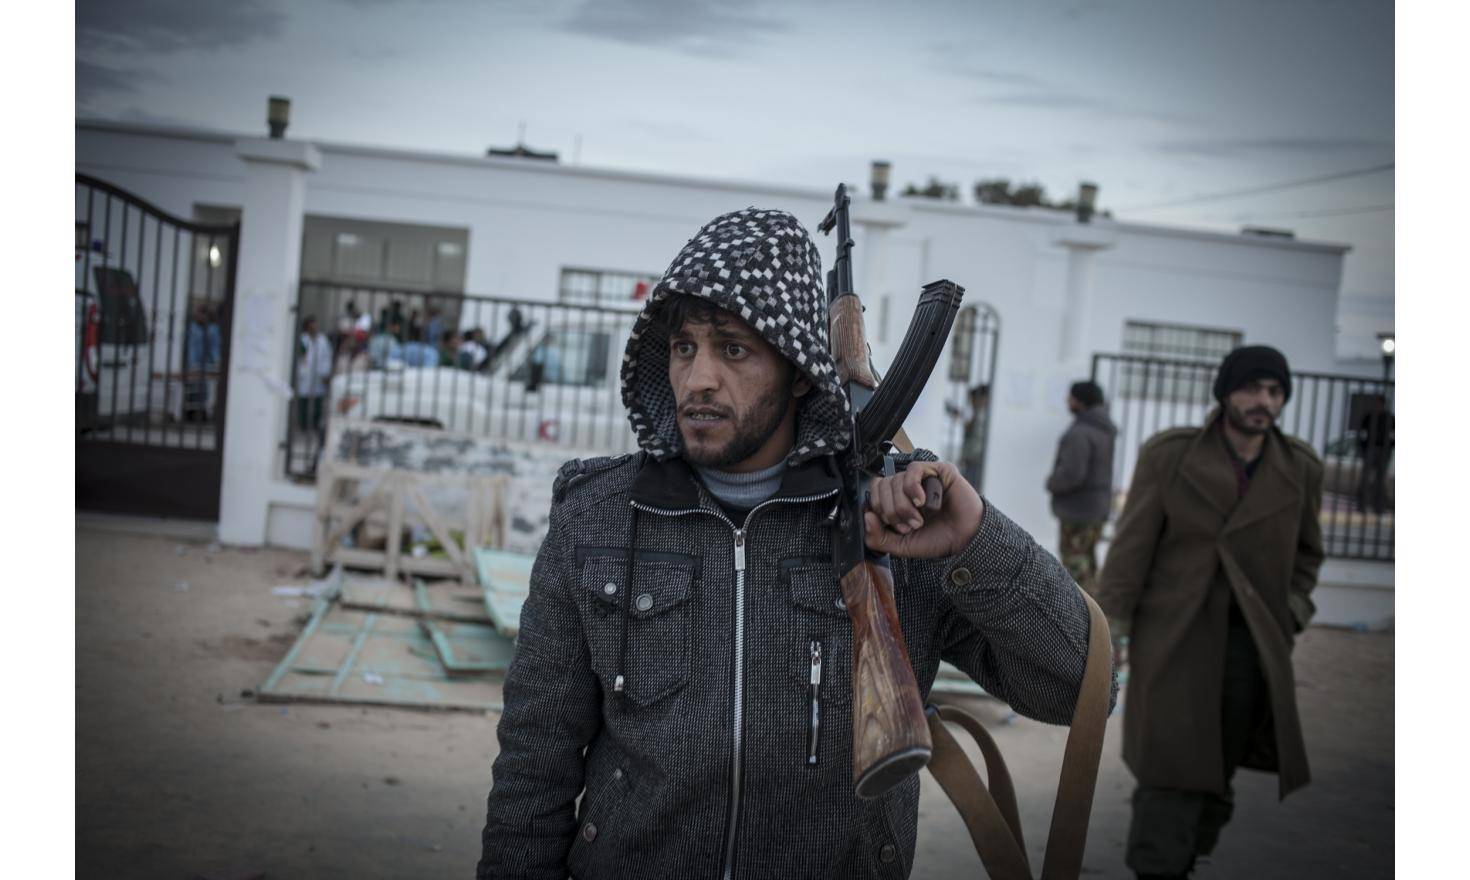 On the road to Syrte /  Eastern Libya / - Benghazi, Ajdabiya, Brega, Ras Lanuf, ...Rebels in Libya have been celebrating after fighting off an attempt by troops loyal to Col Muammar Gaddafi to retake the eastern oil port of Brega. Insurgent in Ras Lanouf.